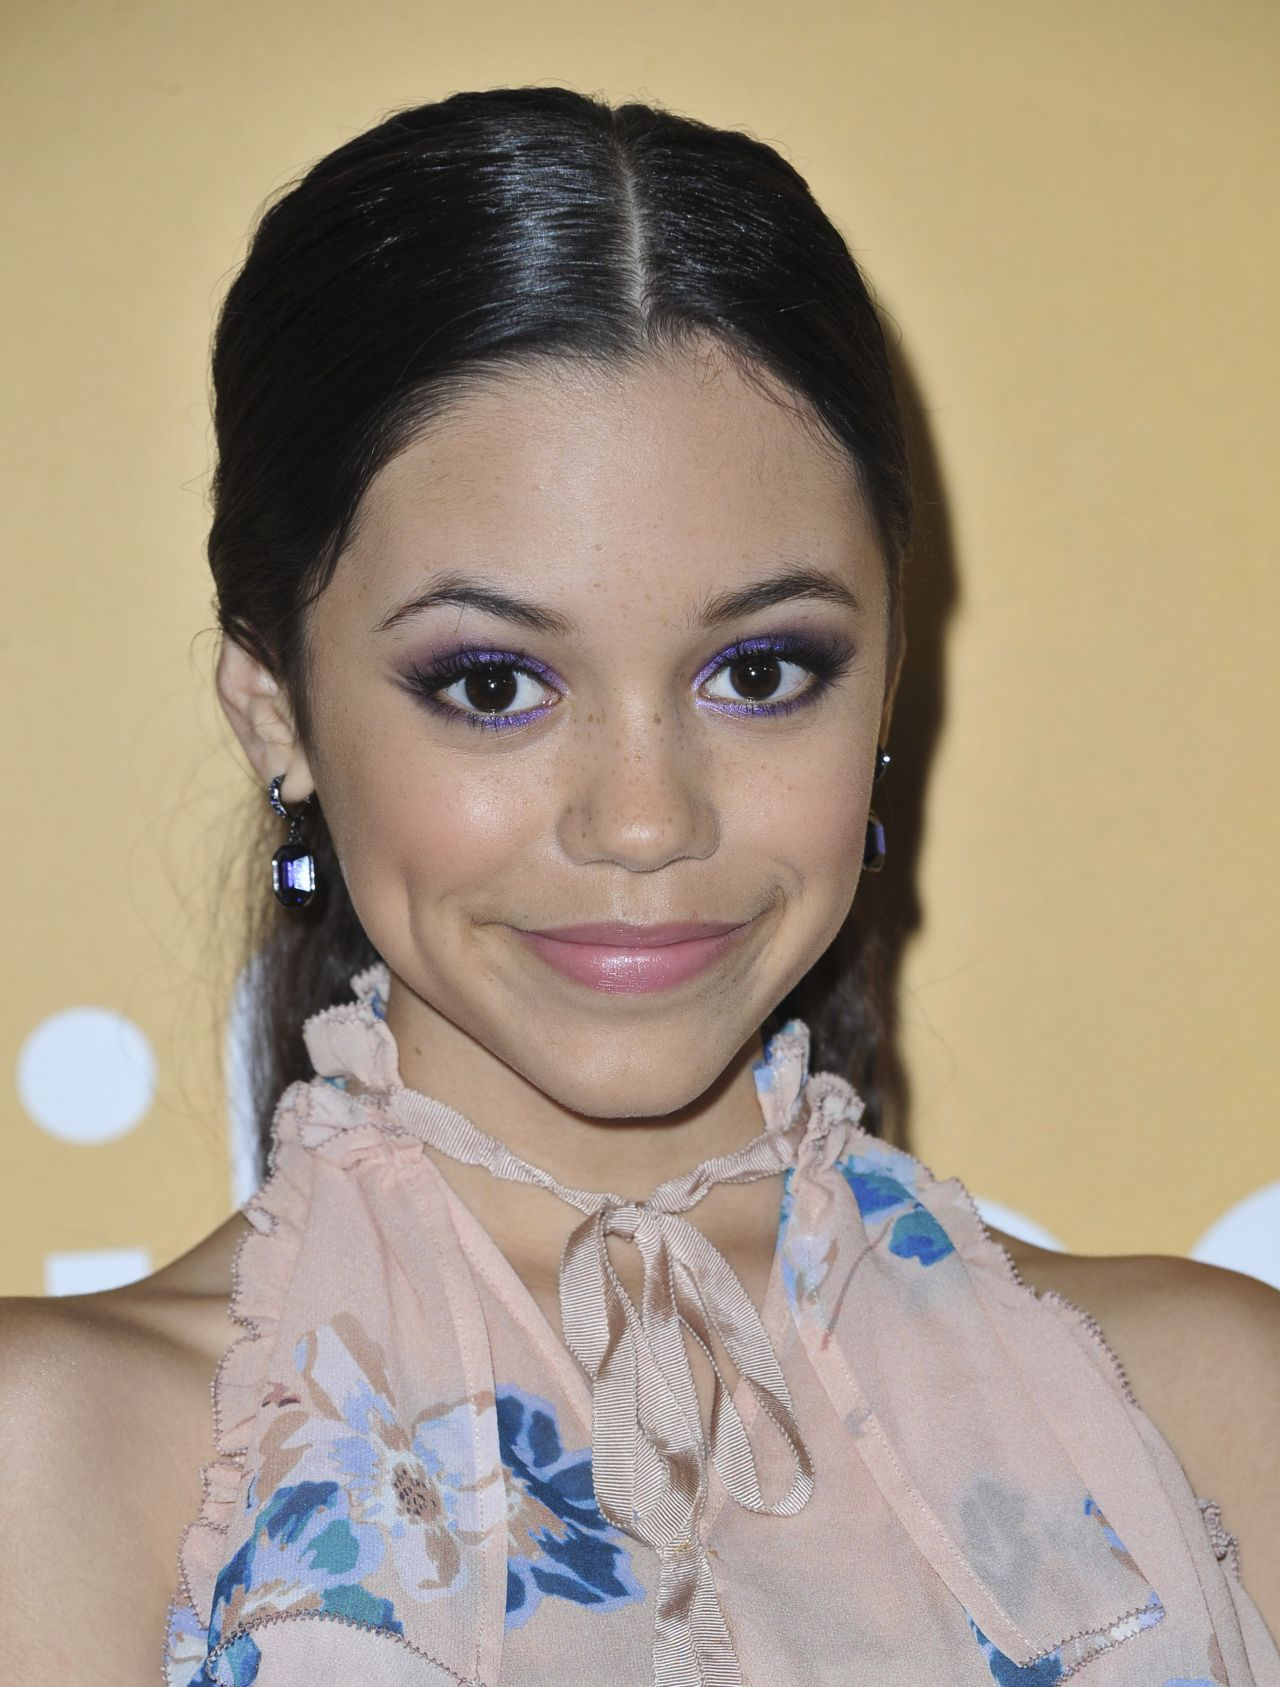 jenna ortega at gifted premiere in los anegeles 4 4 2017